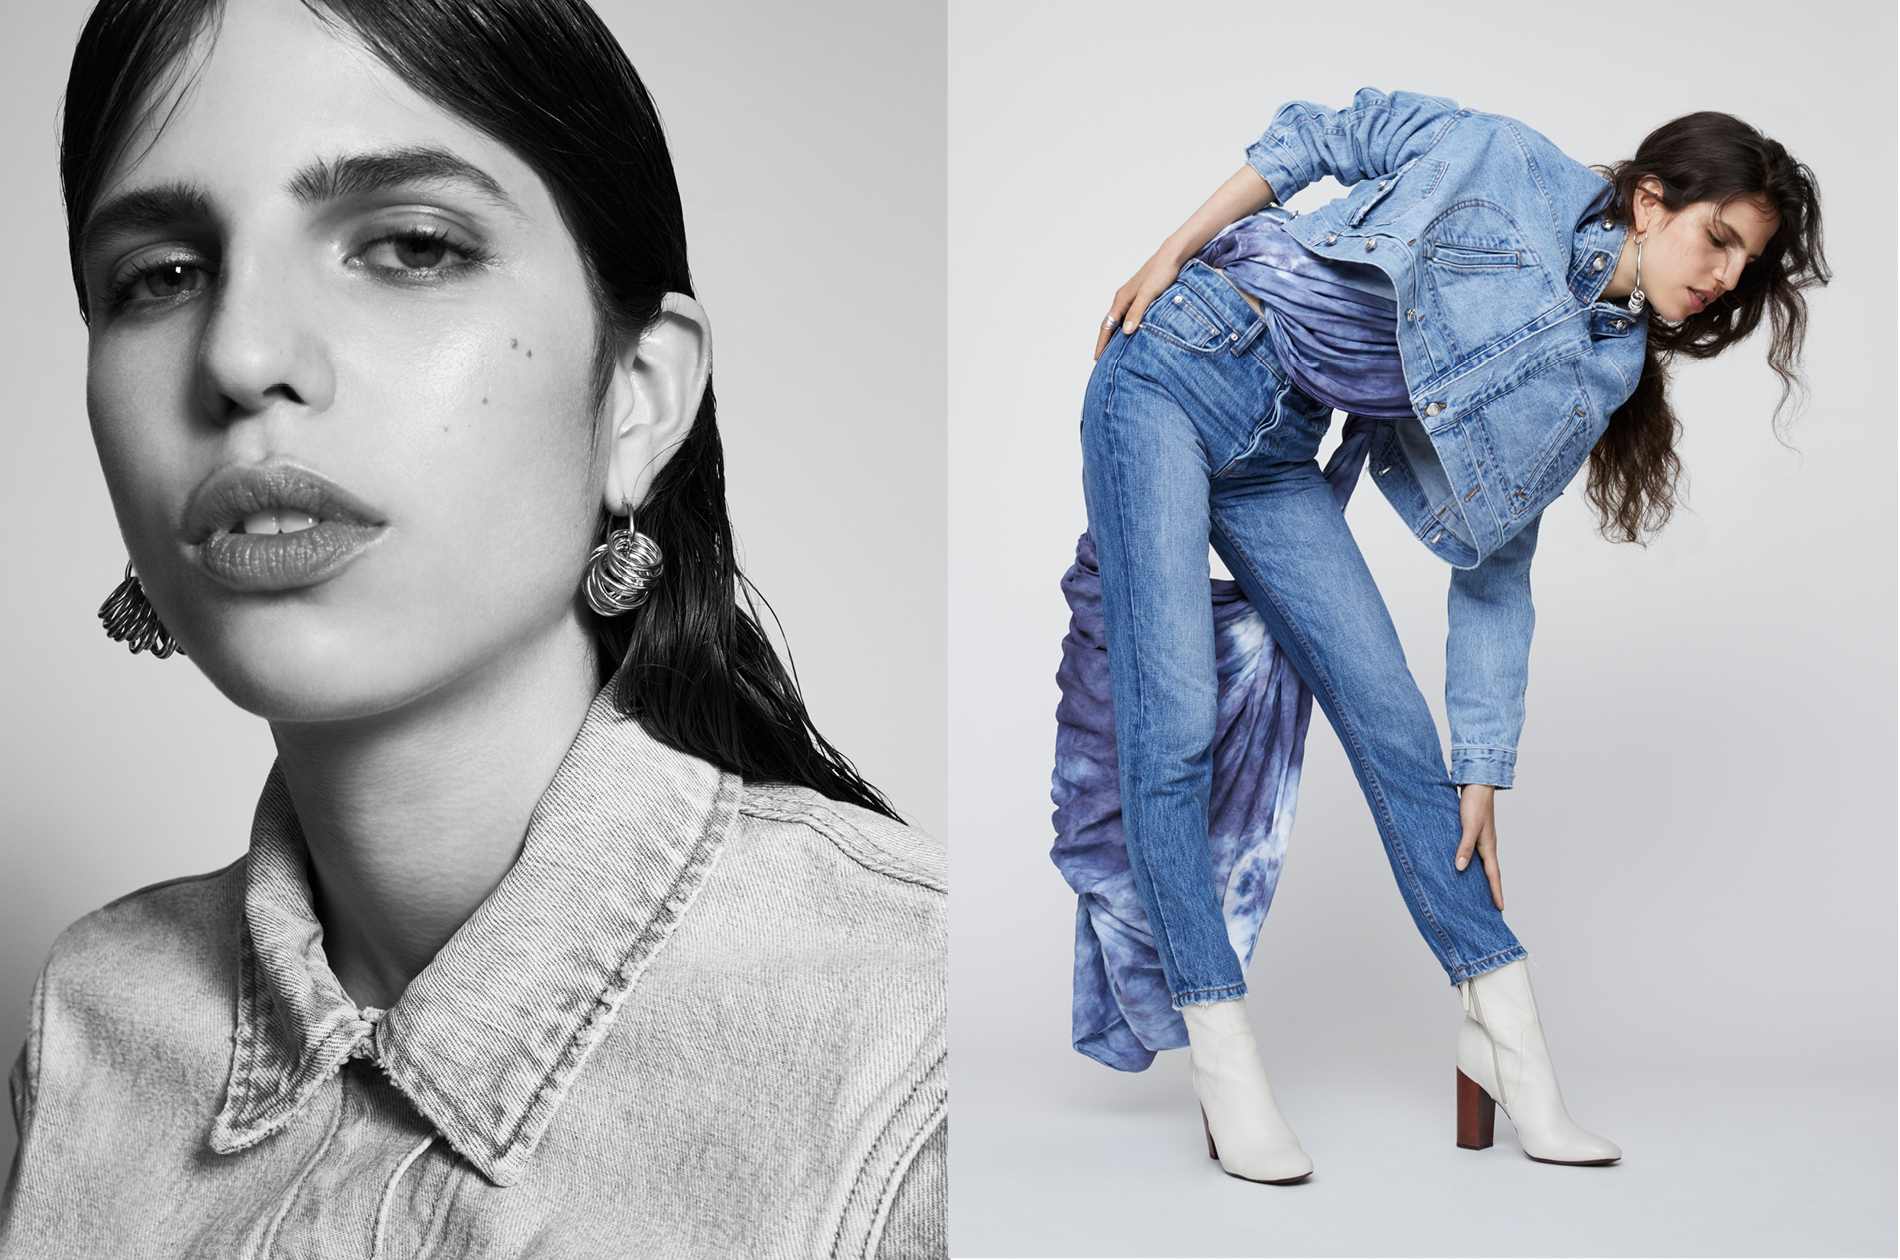 Derek Lam photoshoot for their denim collection.